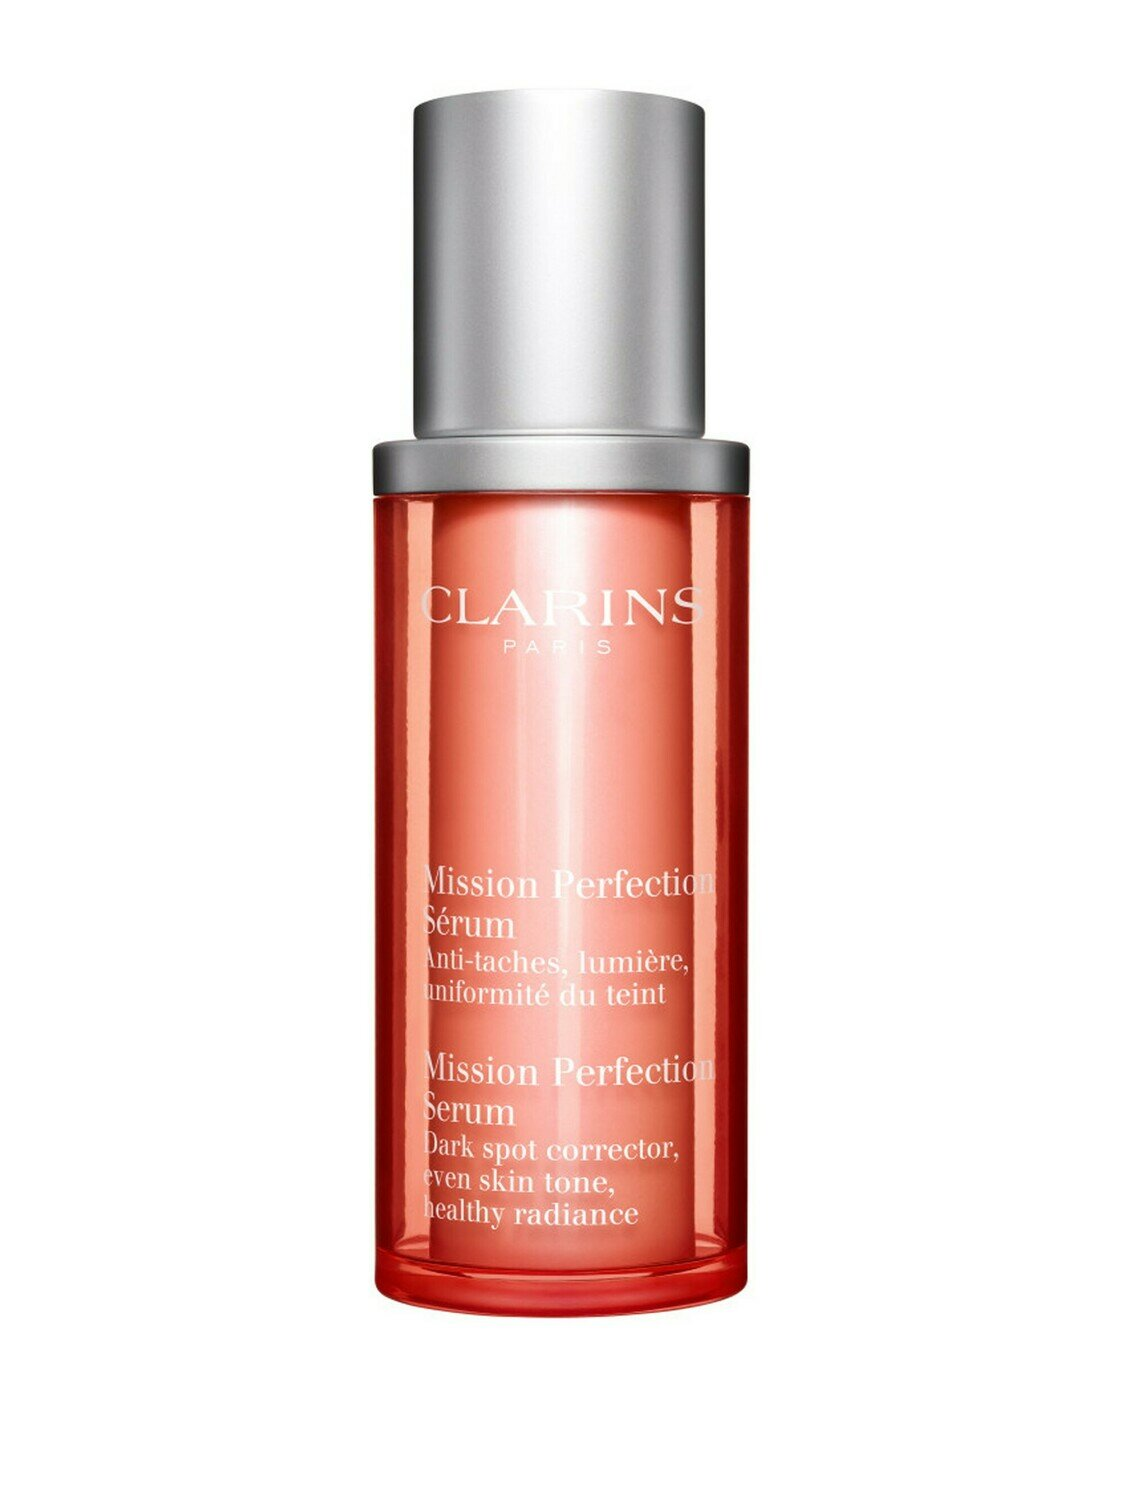 CLARINS SPECIAL CARE PERFECTION MISSION SERUM 30ML